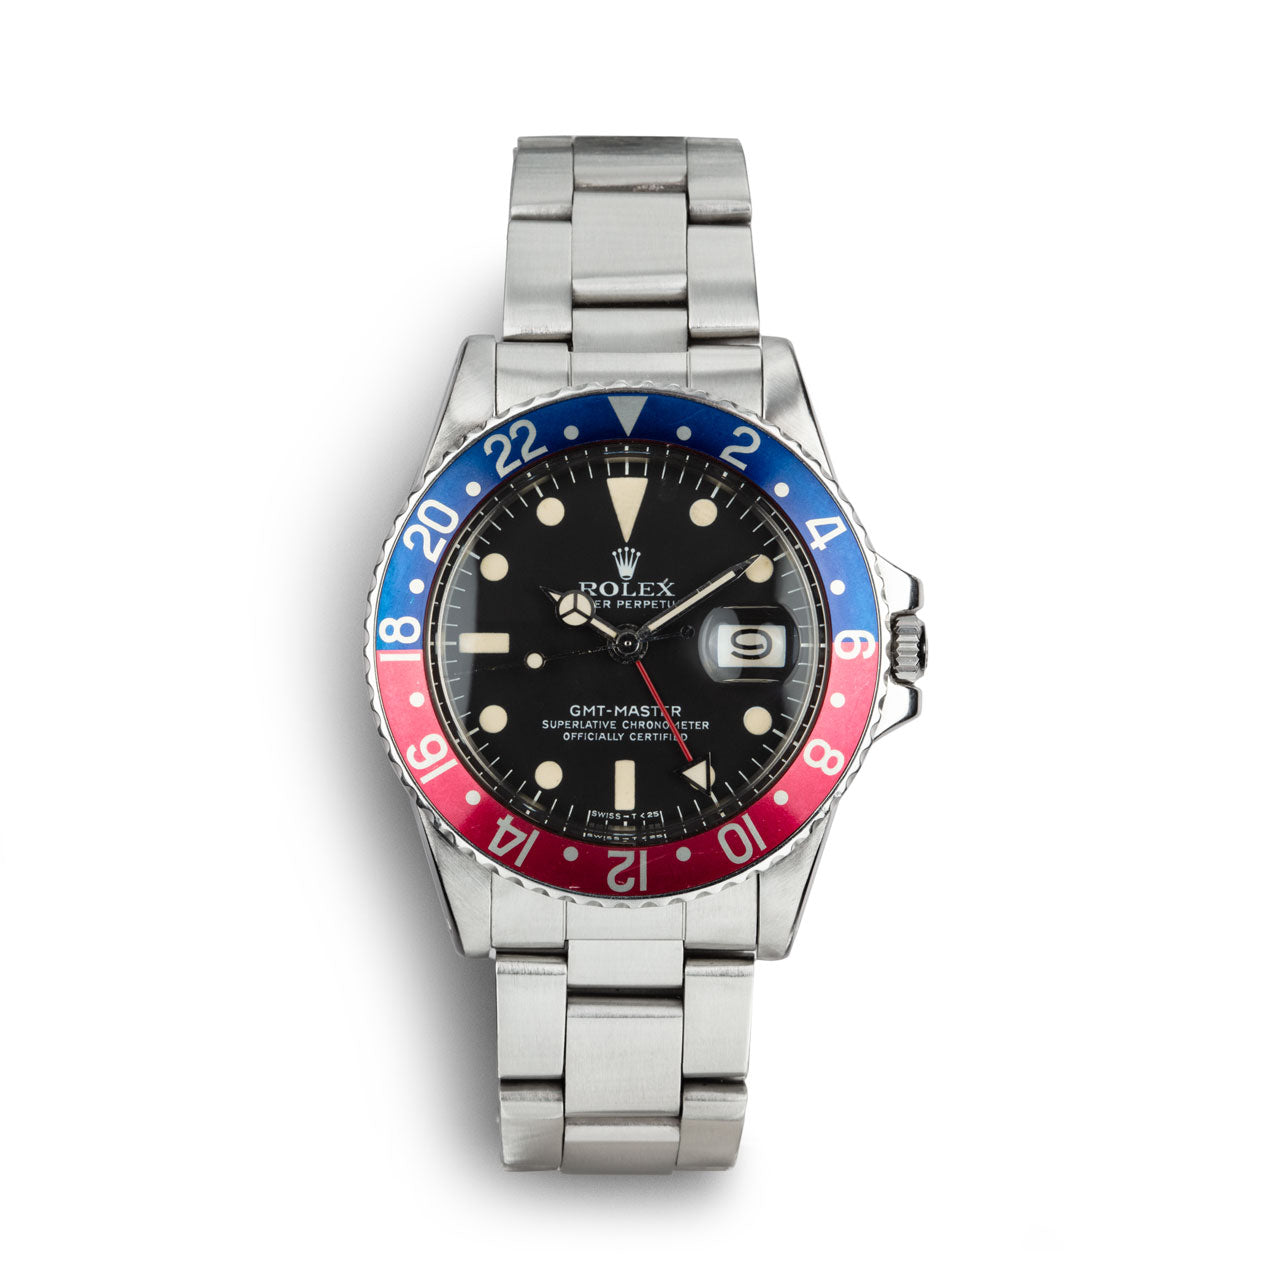 1978 Rolex GMT-Master Reference 1675 Watch